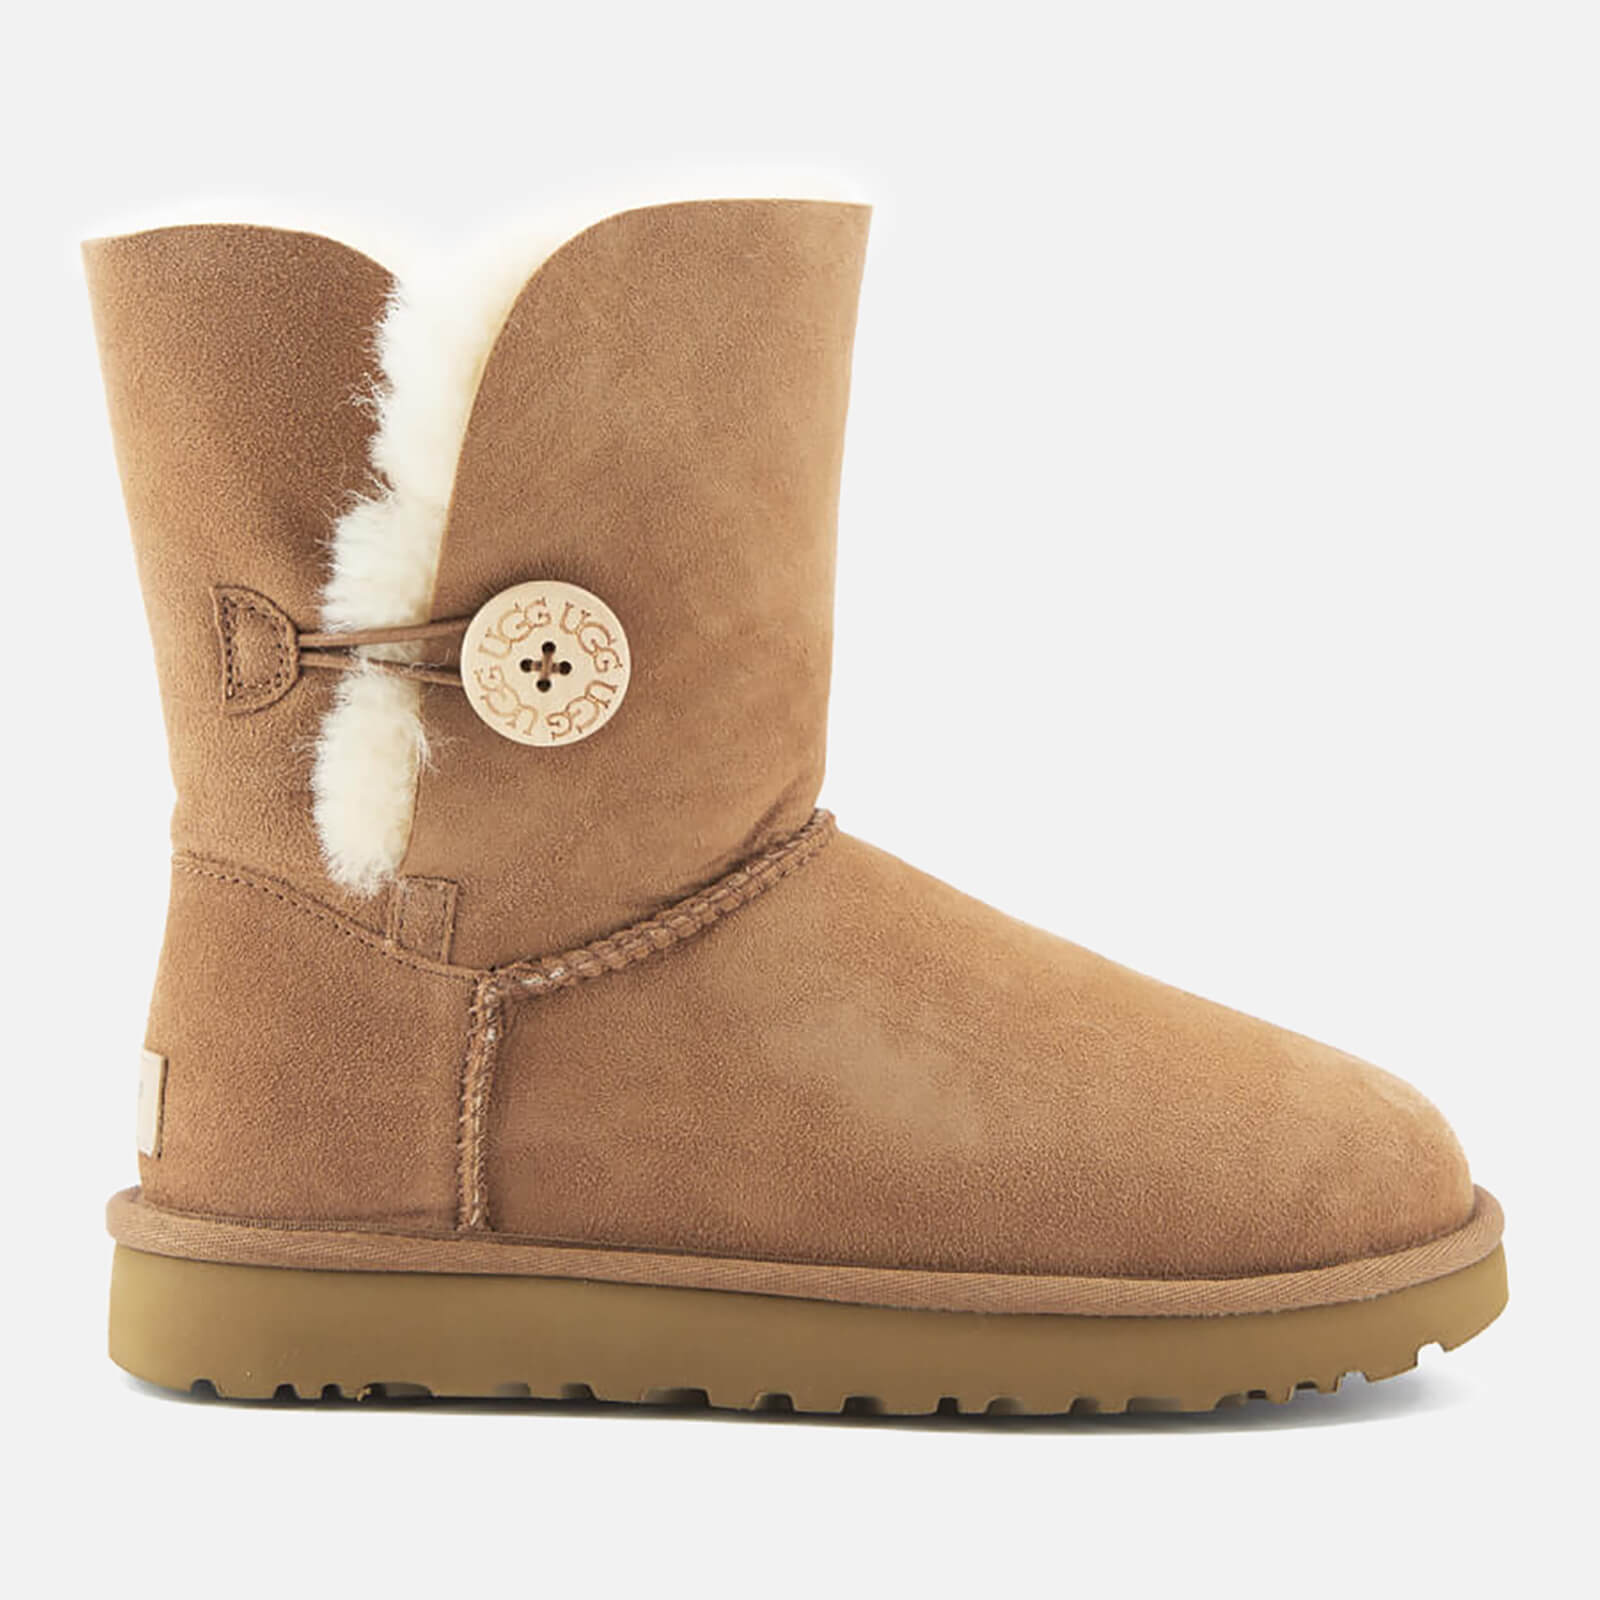 01ea8121f UGG Women's Bailey Button II Sheepskin Boots - Chestnut - Free UK Delivery  over £50